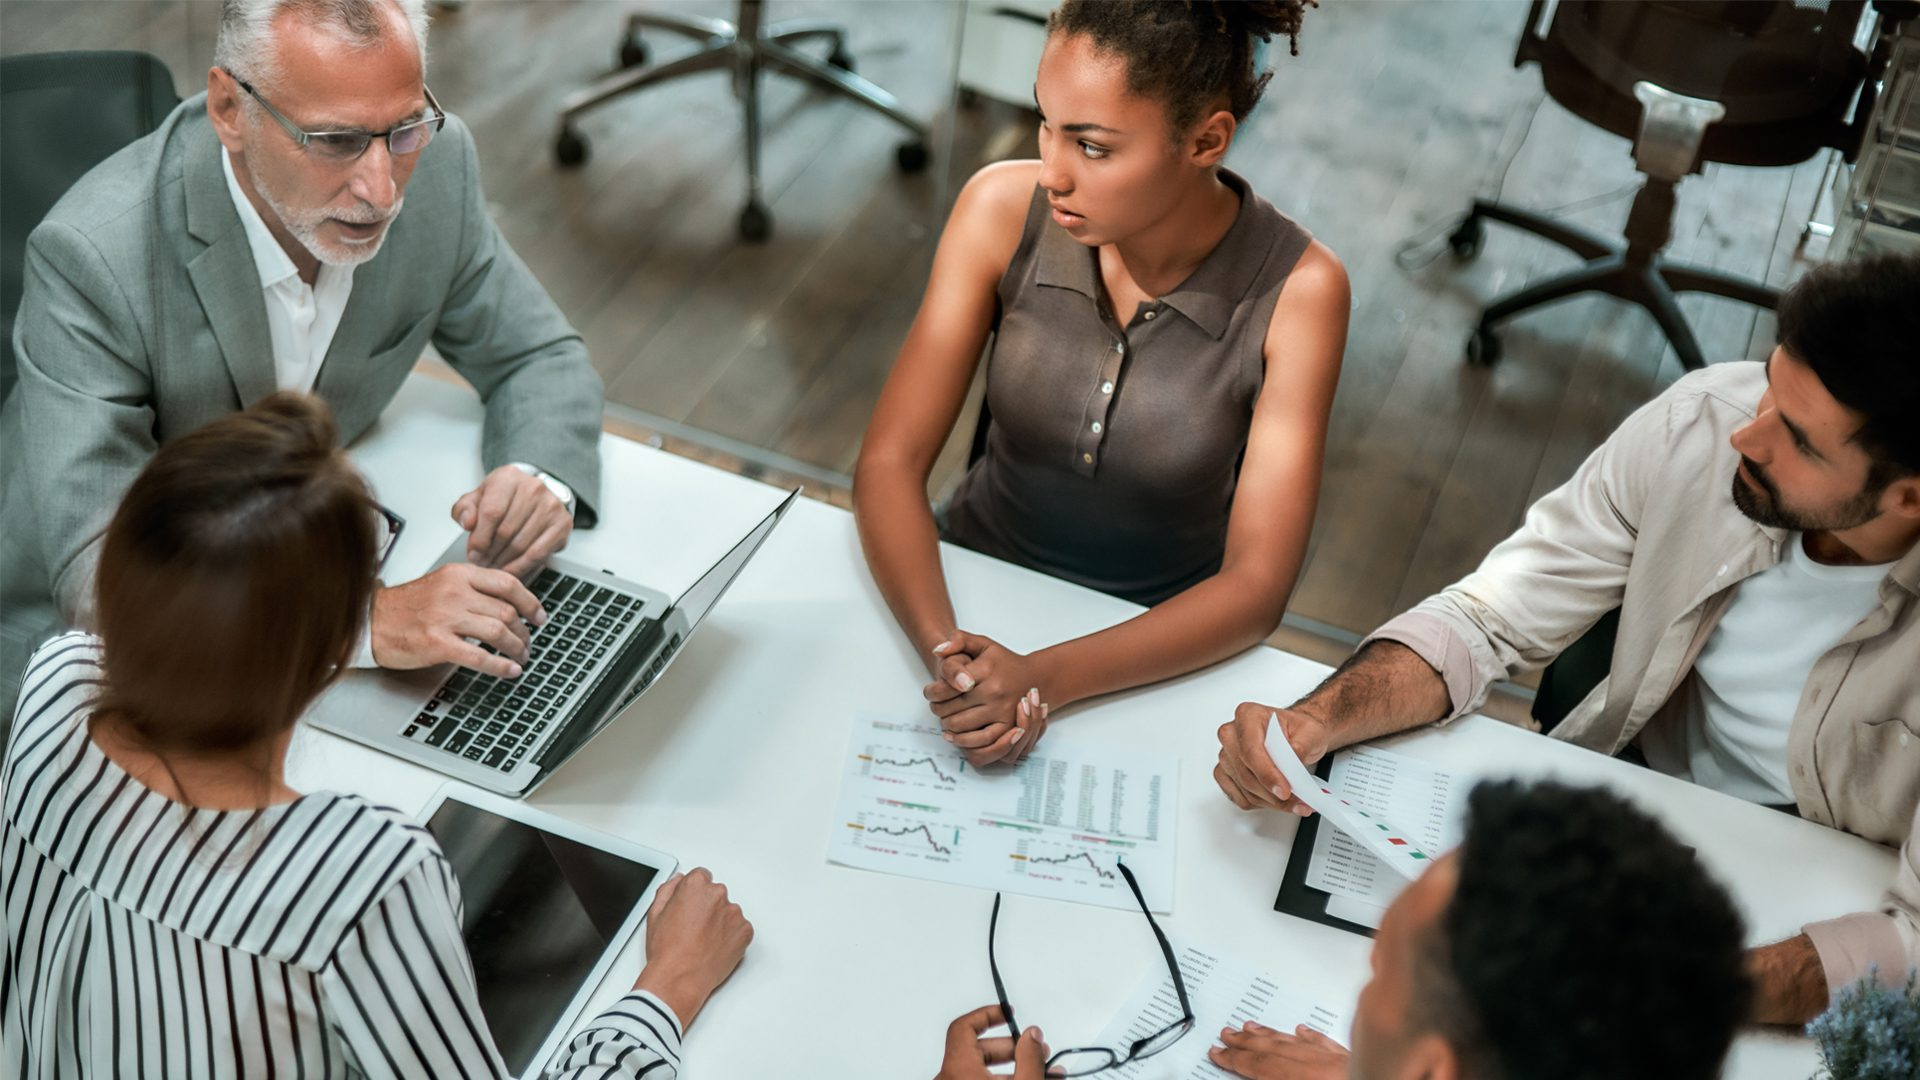 blog image - digital strategy - multicultural team discussing business